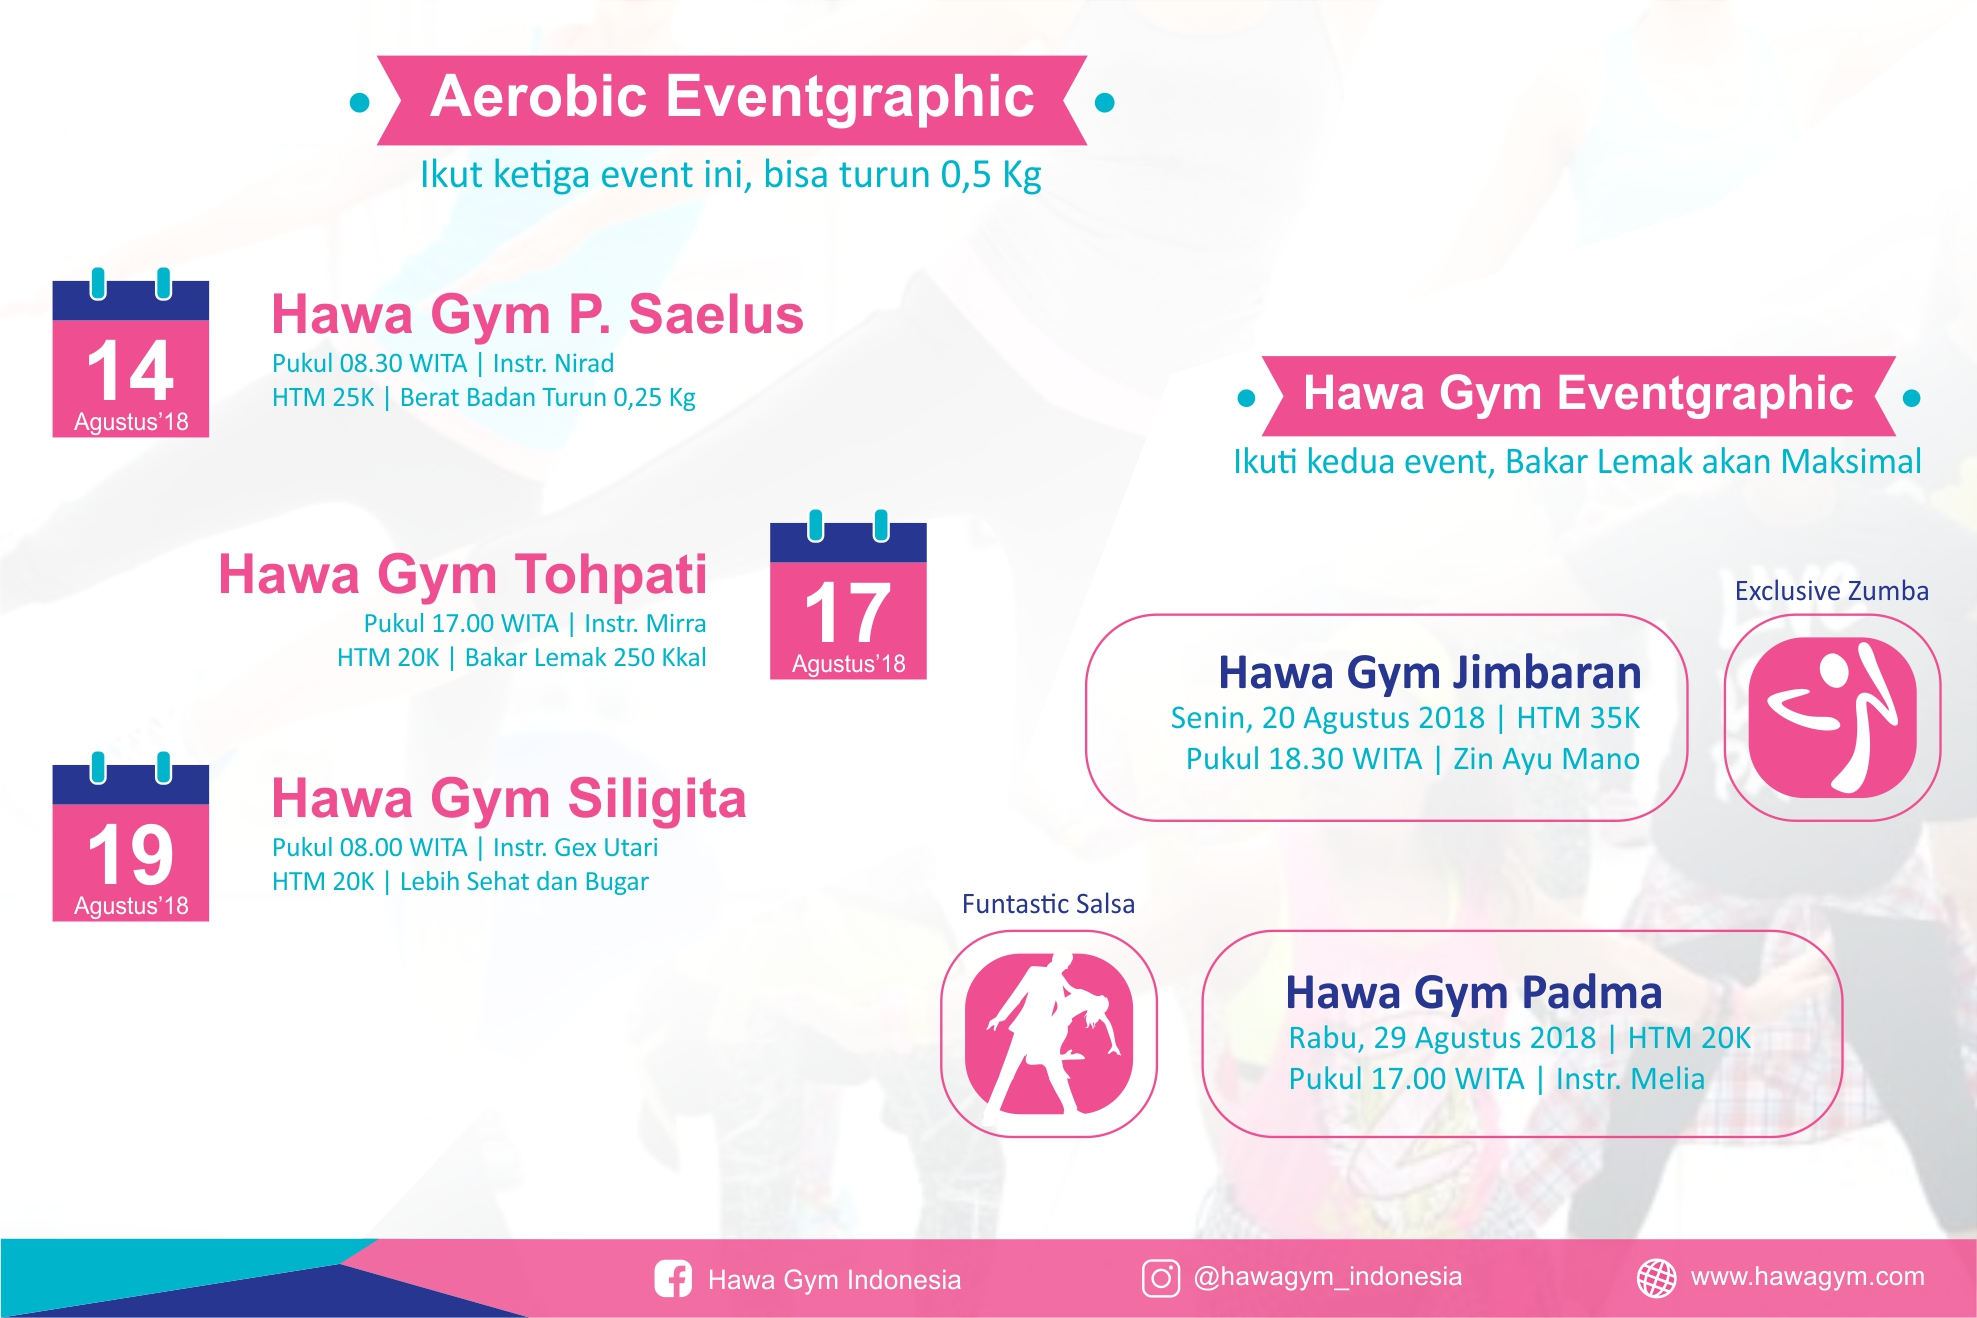 event-kemerdekaan-hawagym-indonesia-eventgraphic-infographic